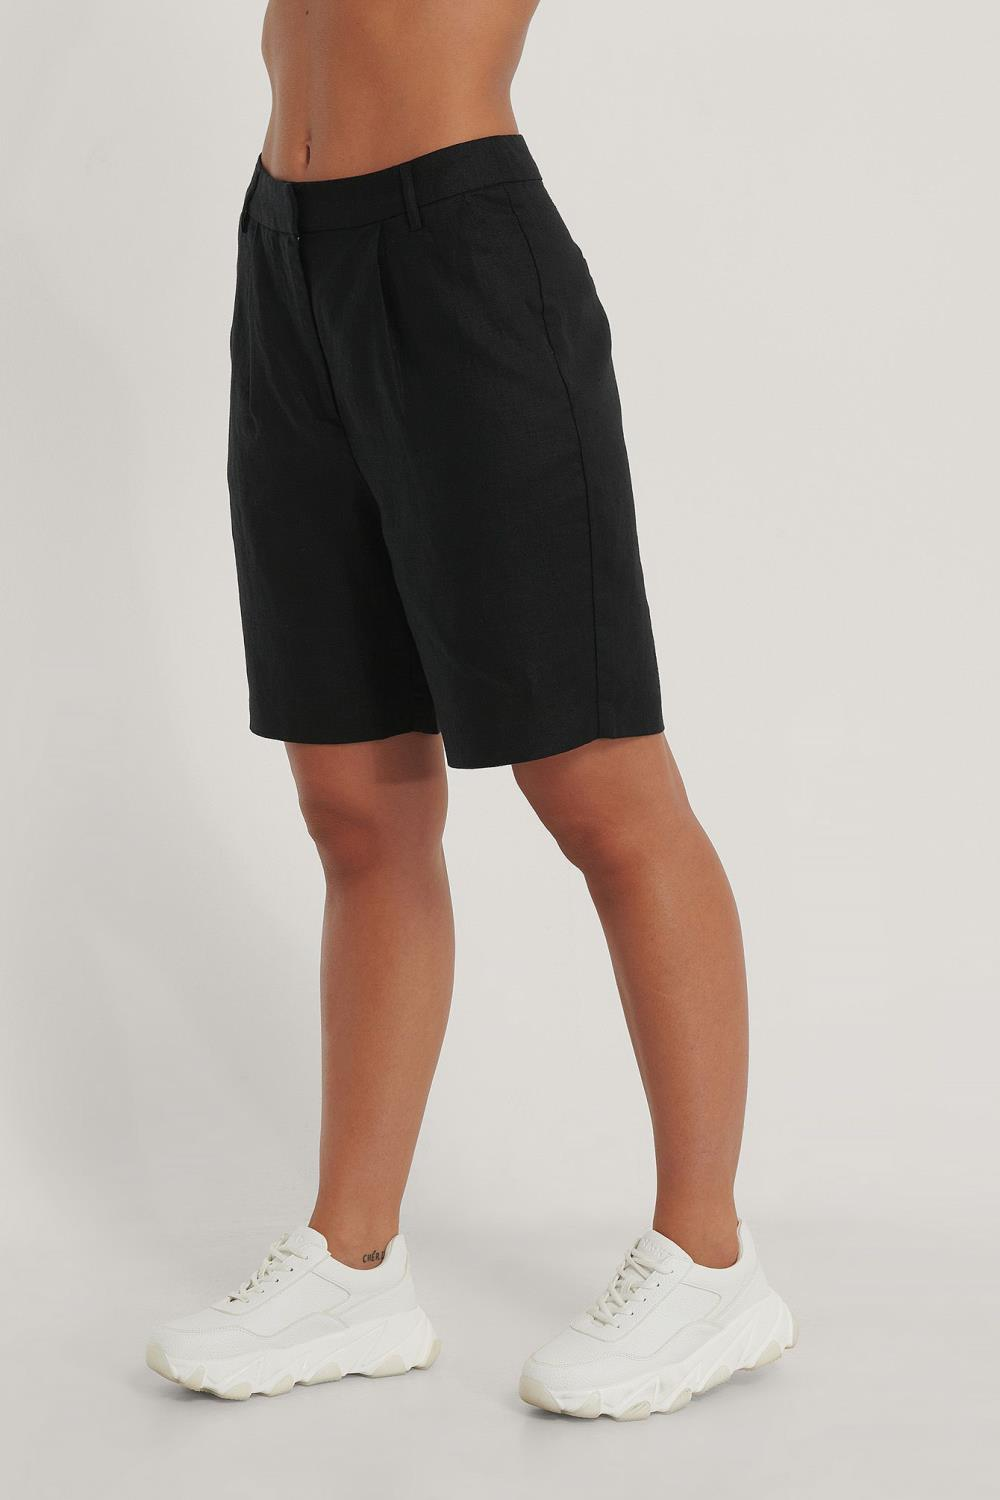 gallery-3736-for-1018-006755-black